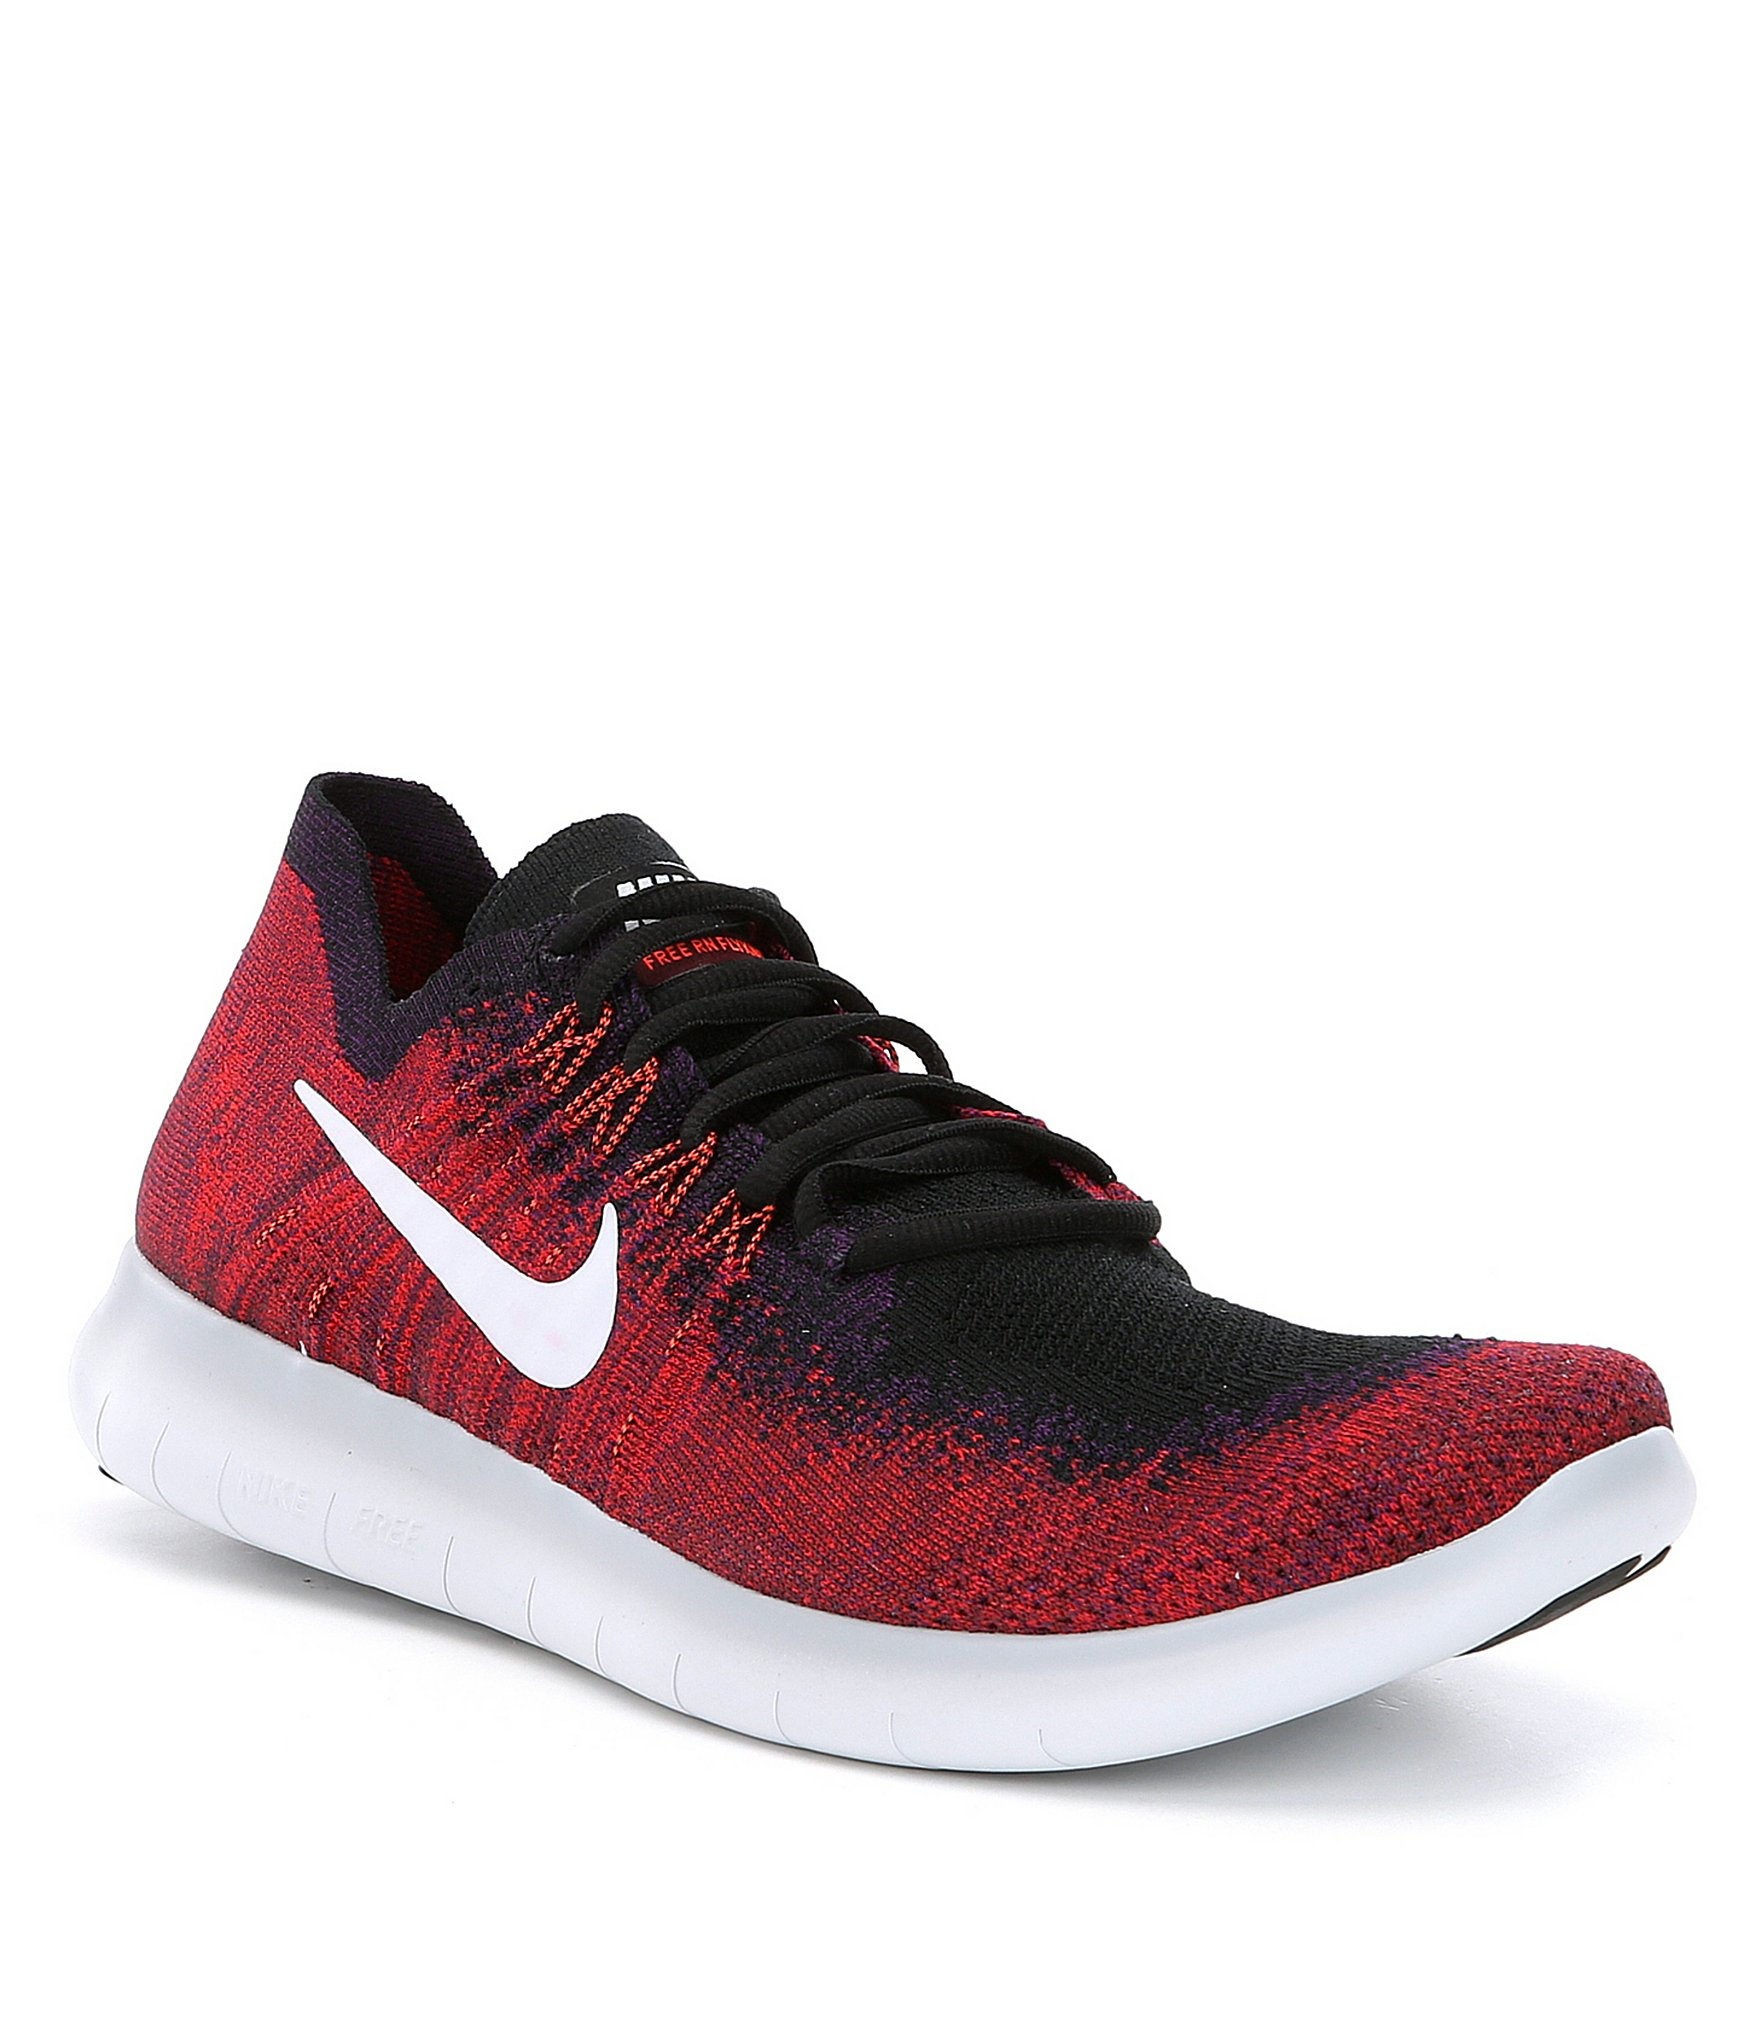 nike s free run flyknit 2 running shoes dillards